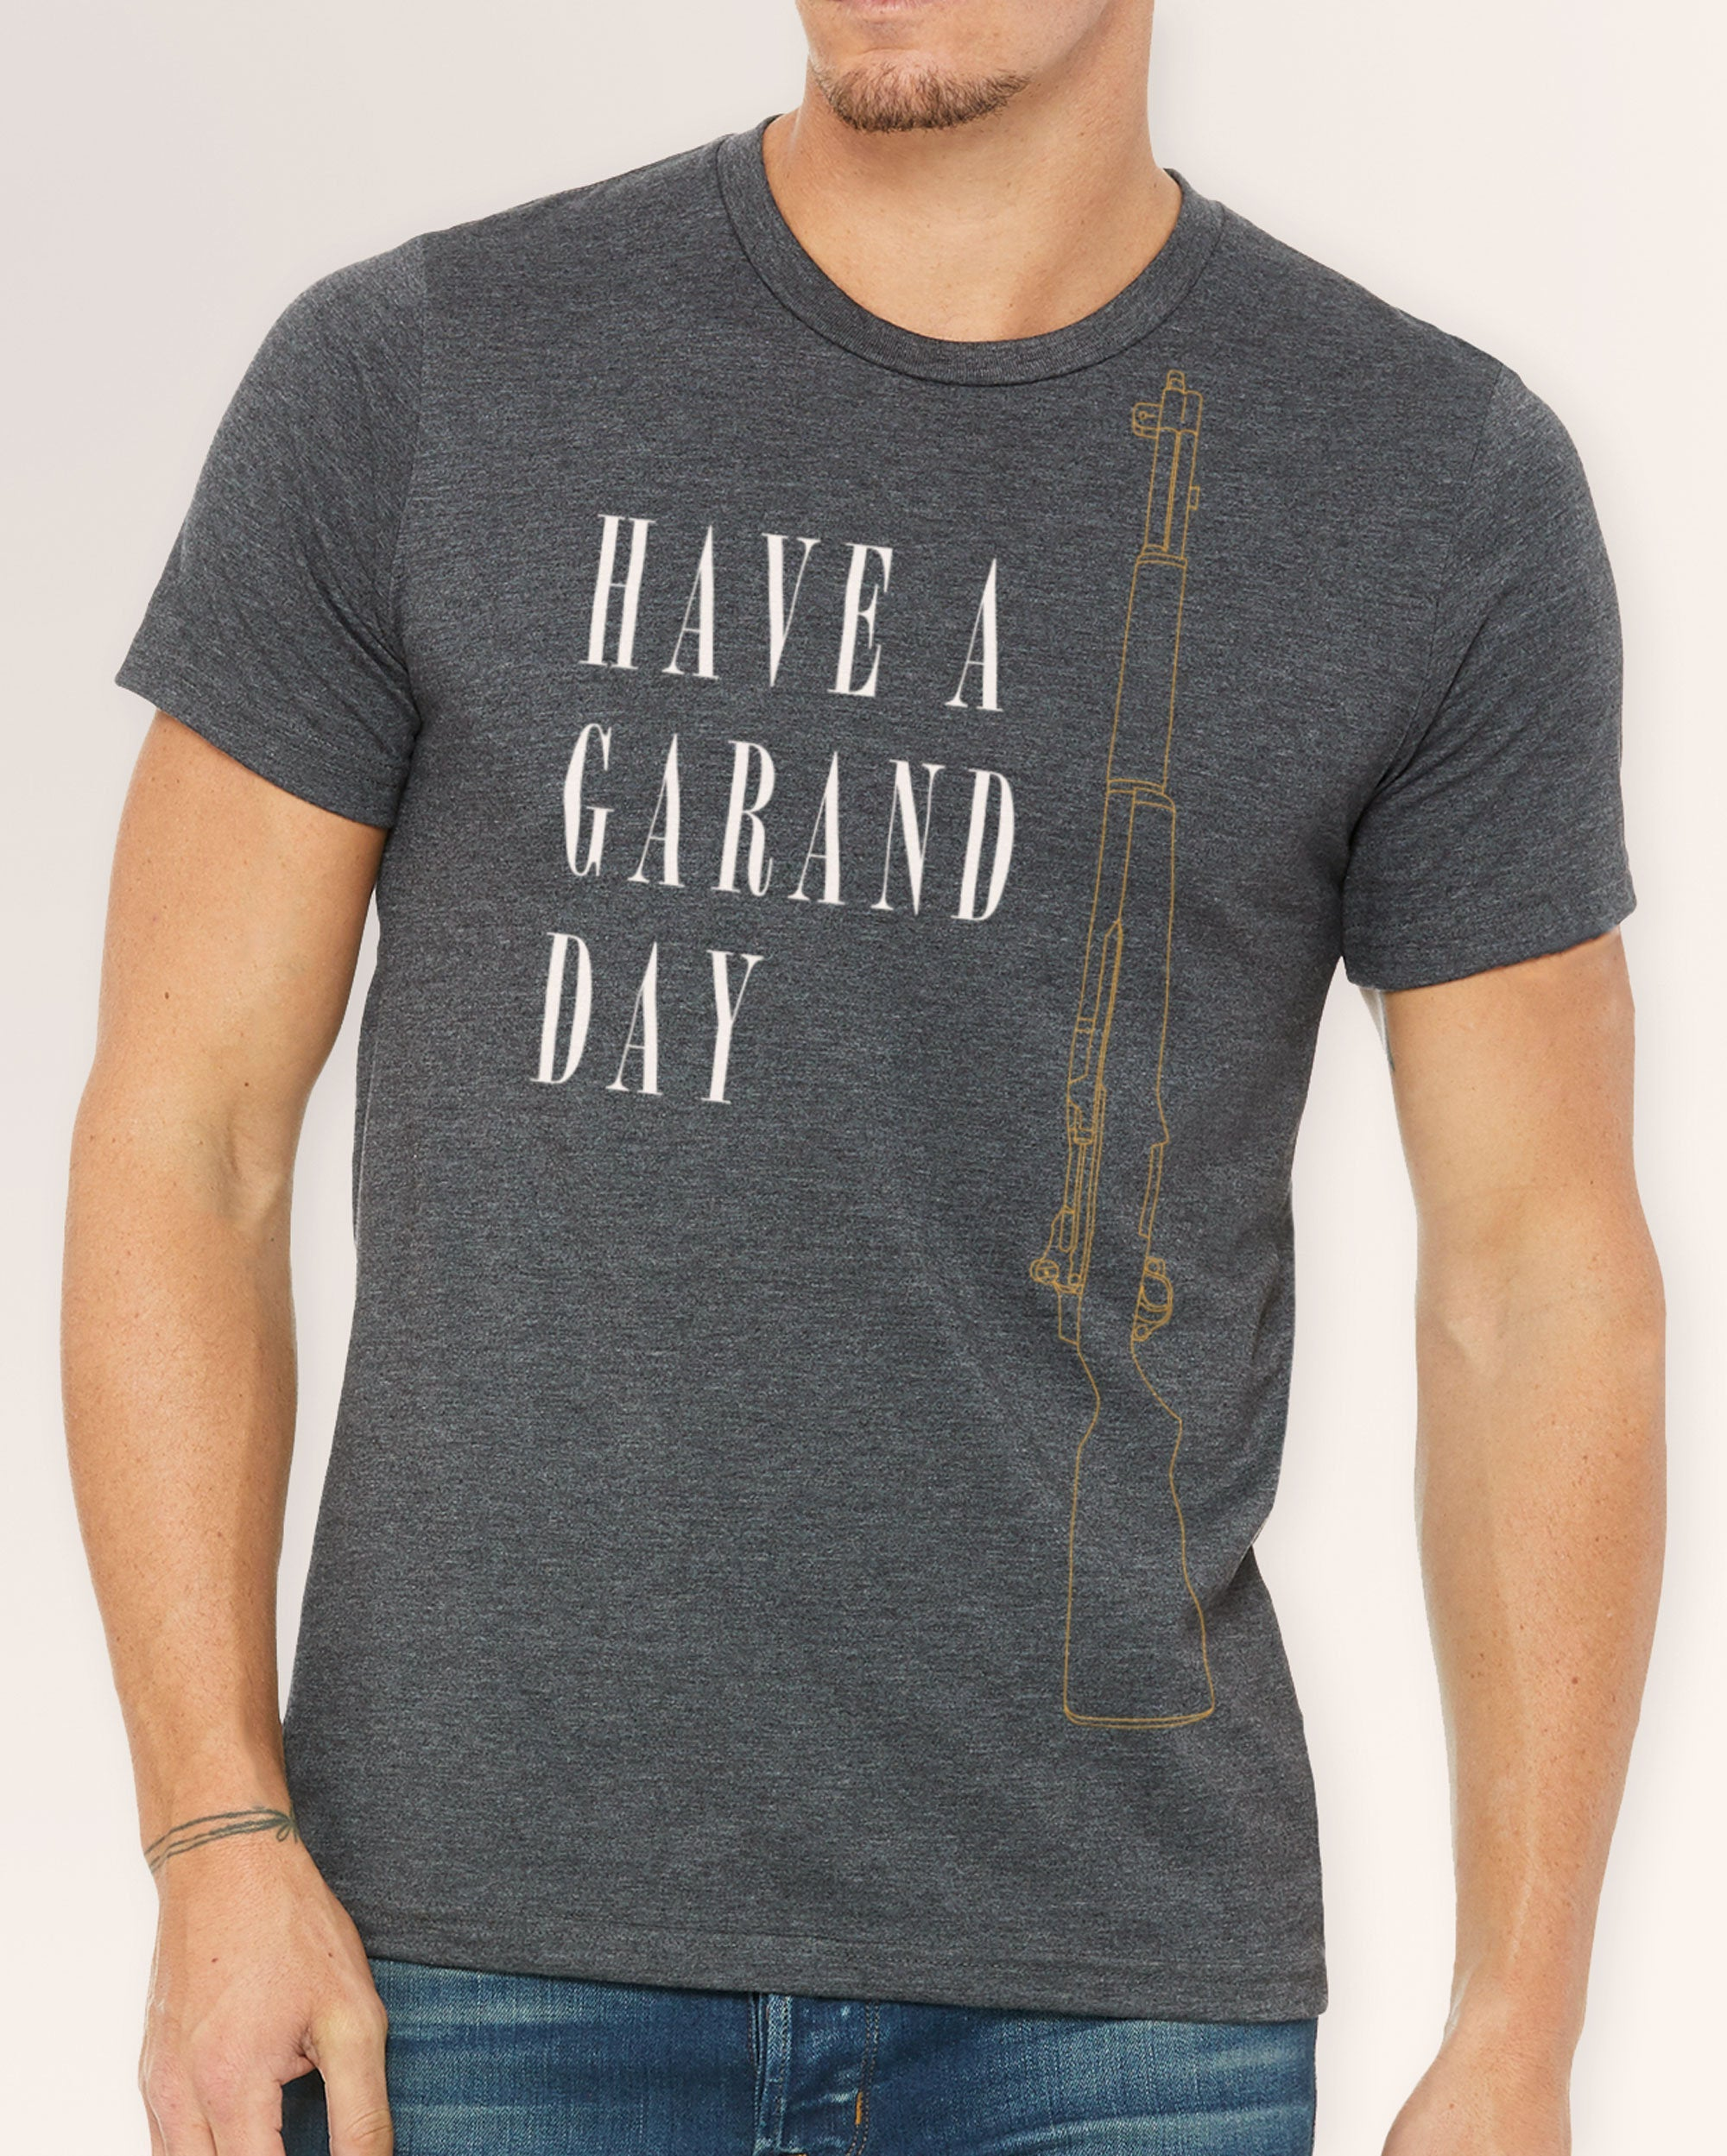 Men's Crew Neck Tee - Have a Garand Day